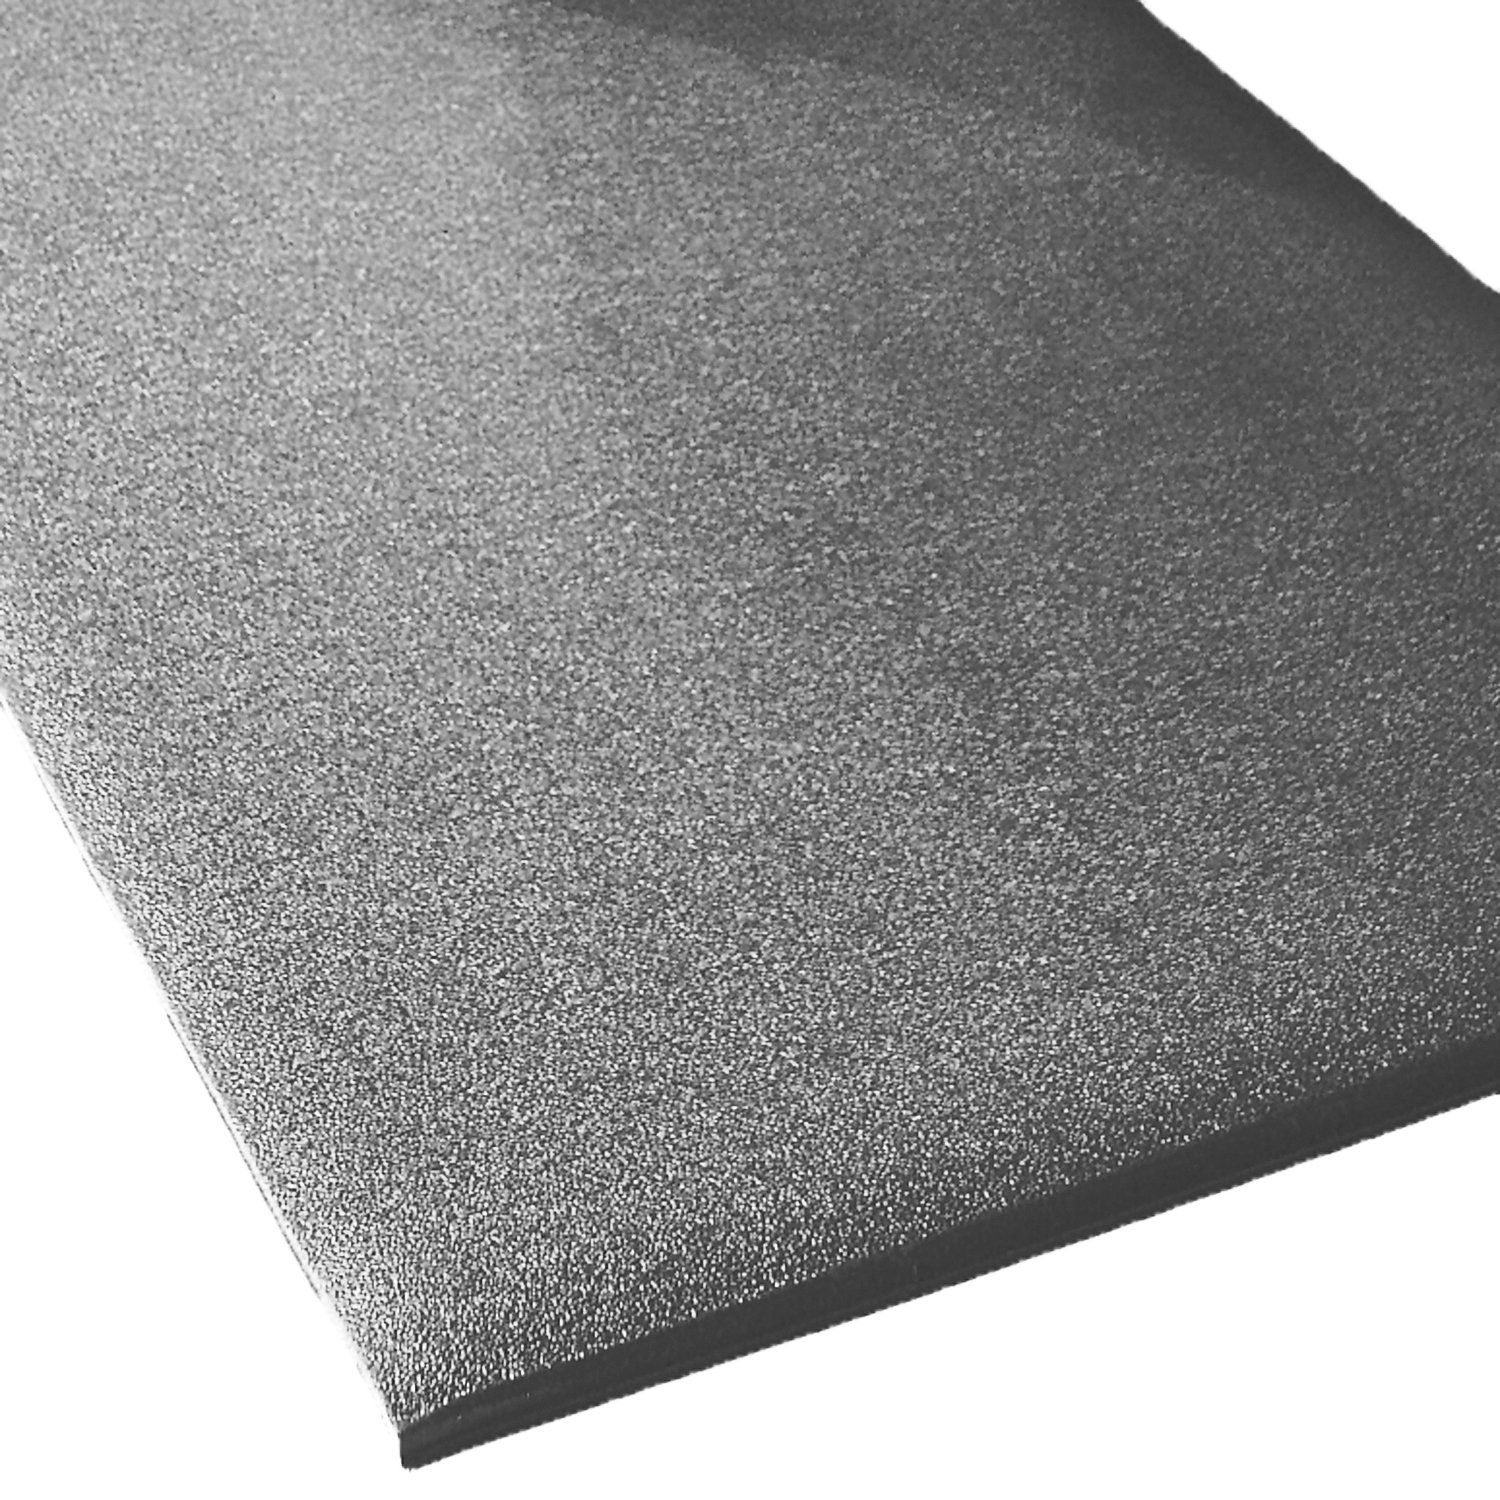 Rhino Mats CST-310-58G Comfort Step Textured Vinyl Foam Anti-Fatigue Mat, 3' Width x 10' Length x 5/8'' Thickness, Gray